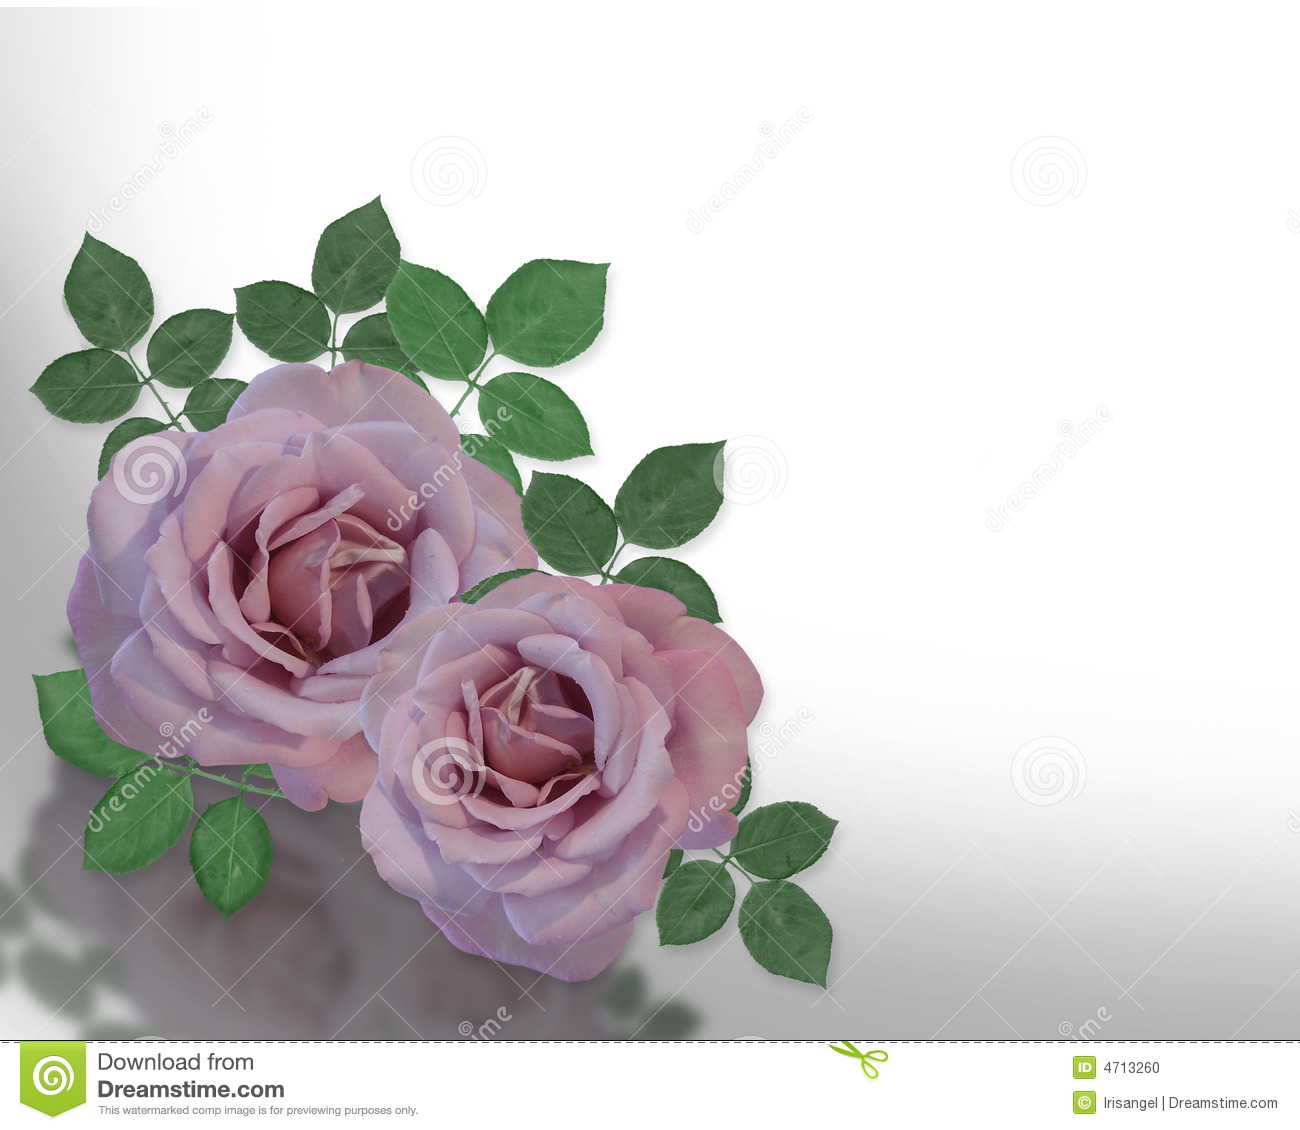 Lavender Rose Background - Wallpaper, High Definition, High ...